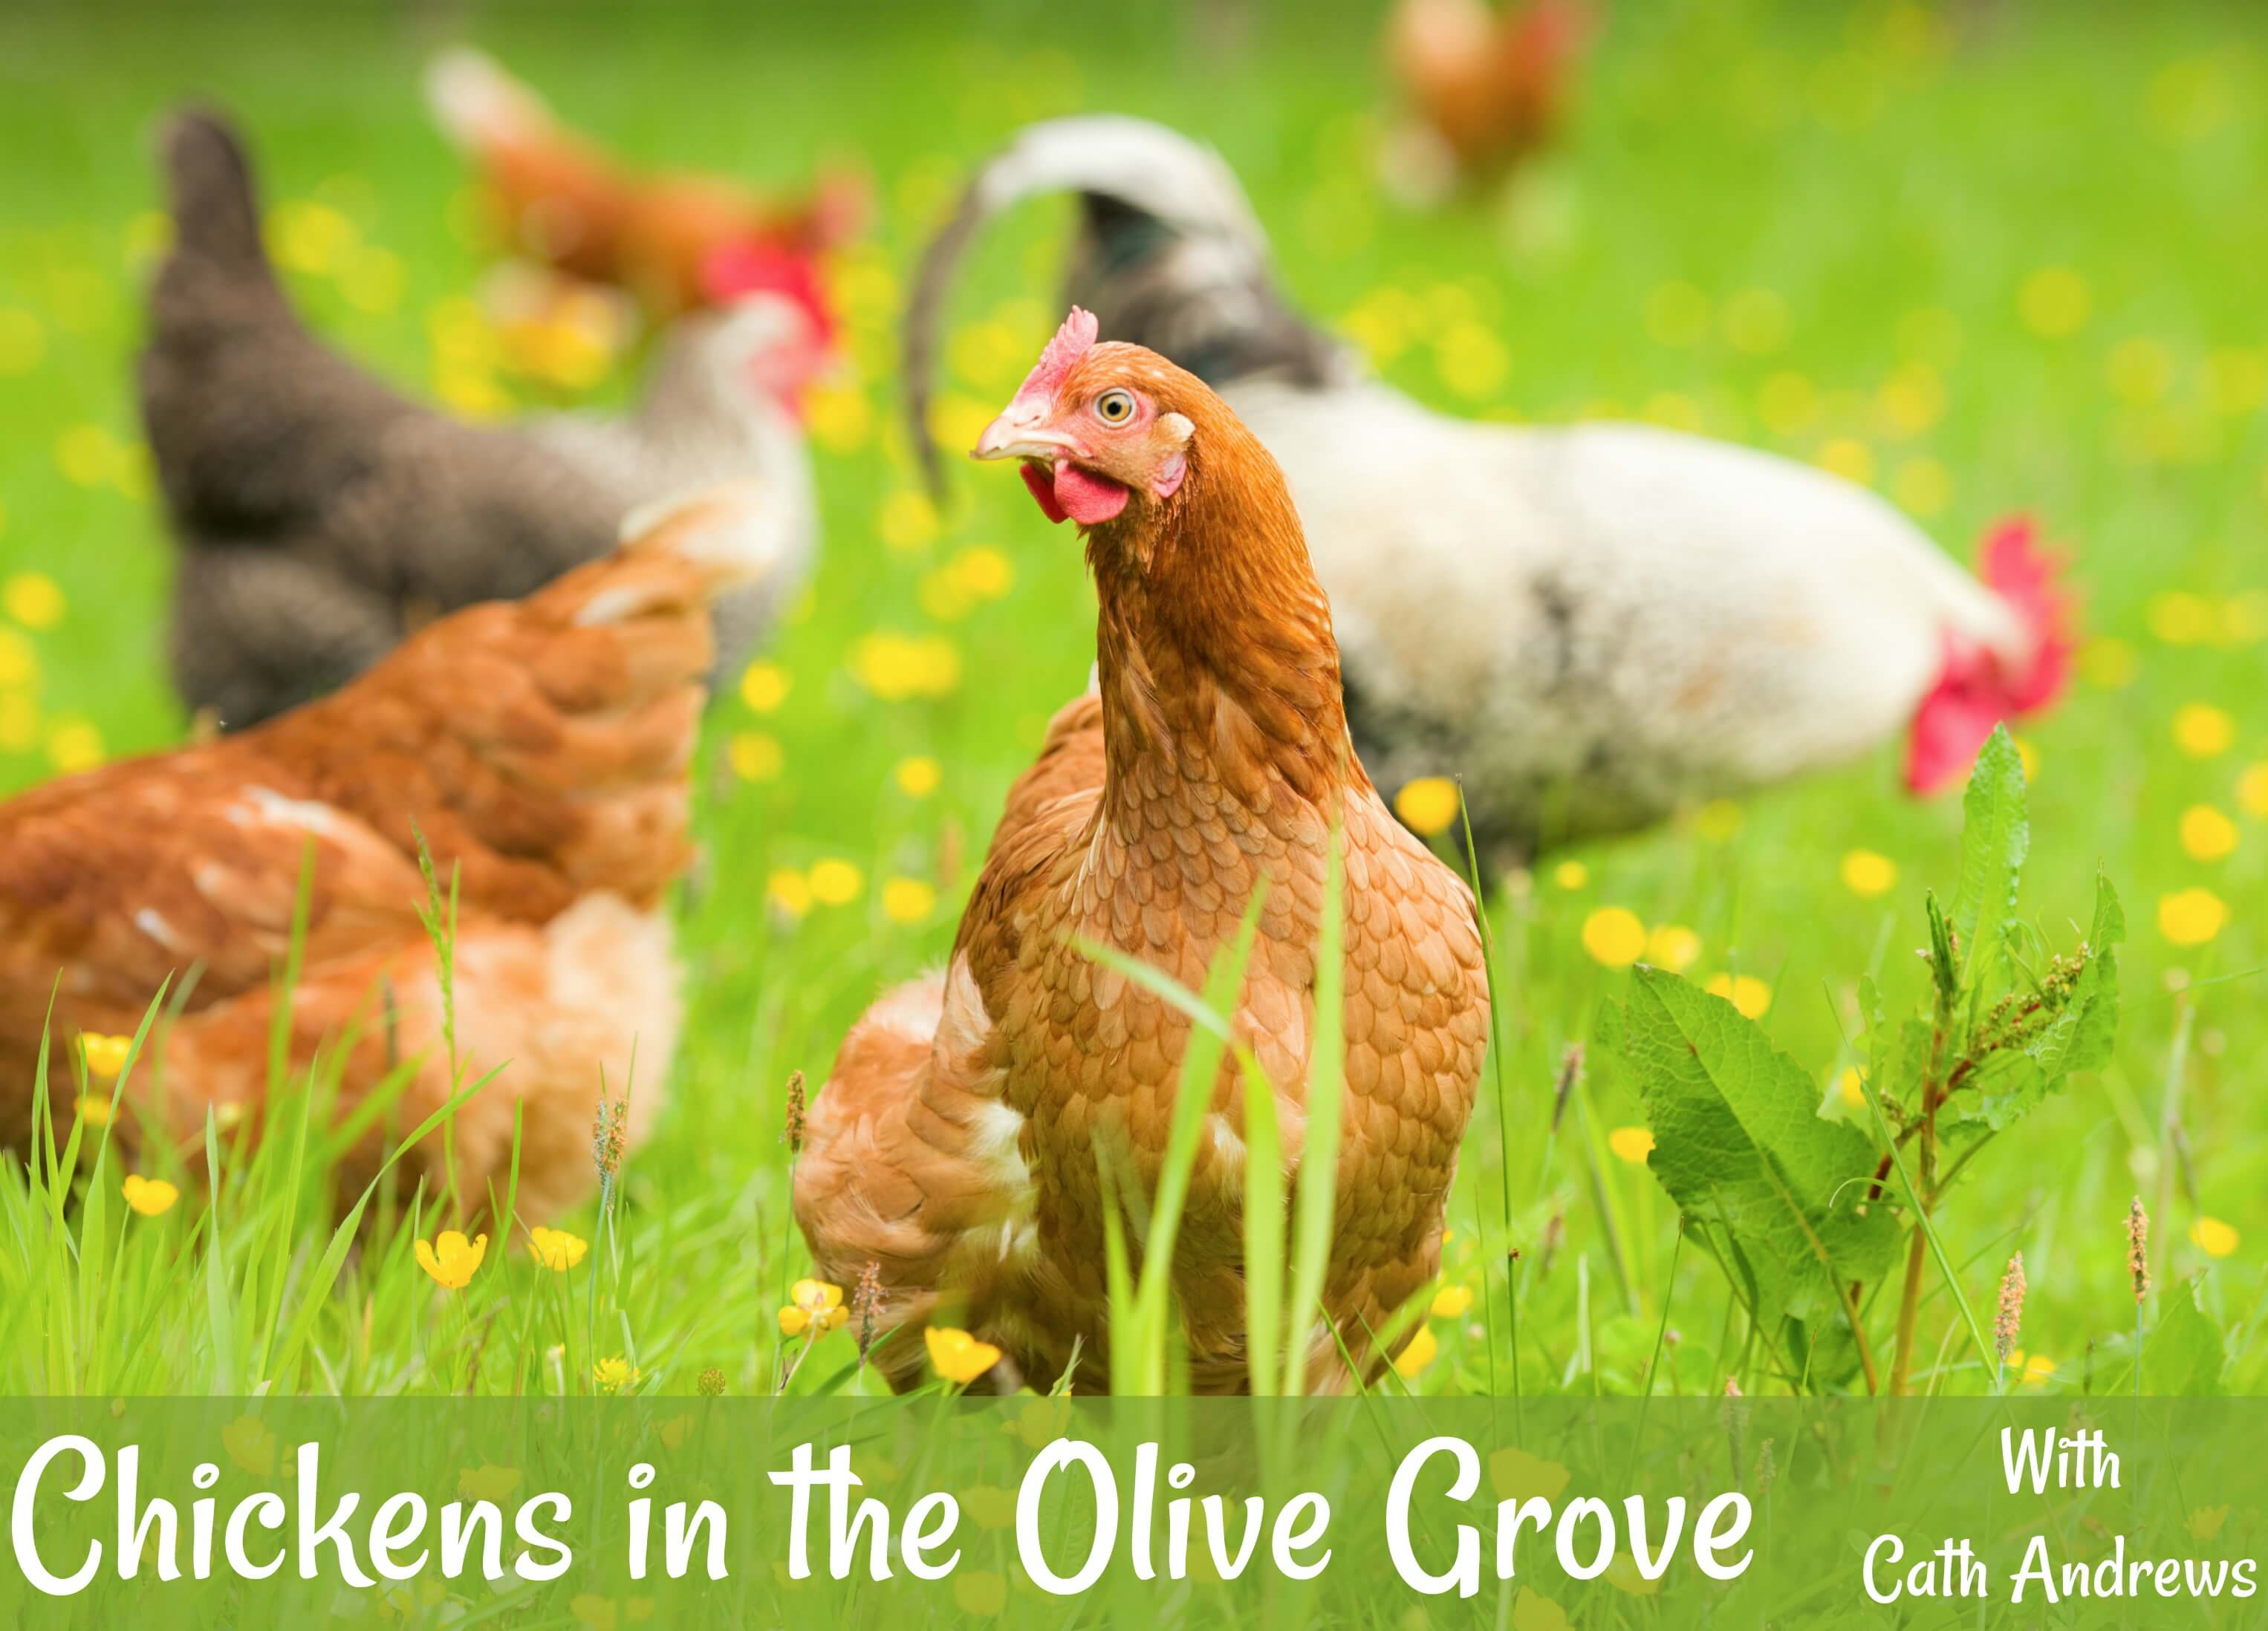 'Chickens in the Olive Grove' - my newsletter header.